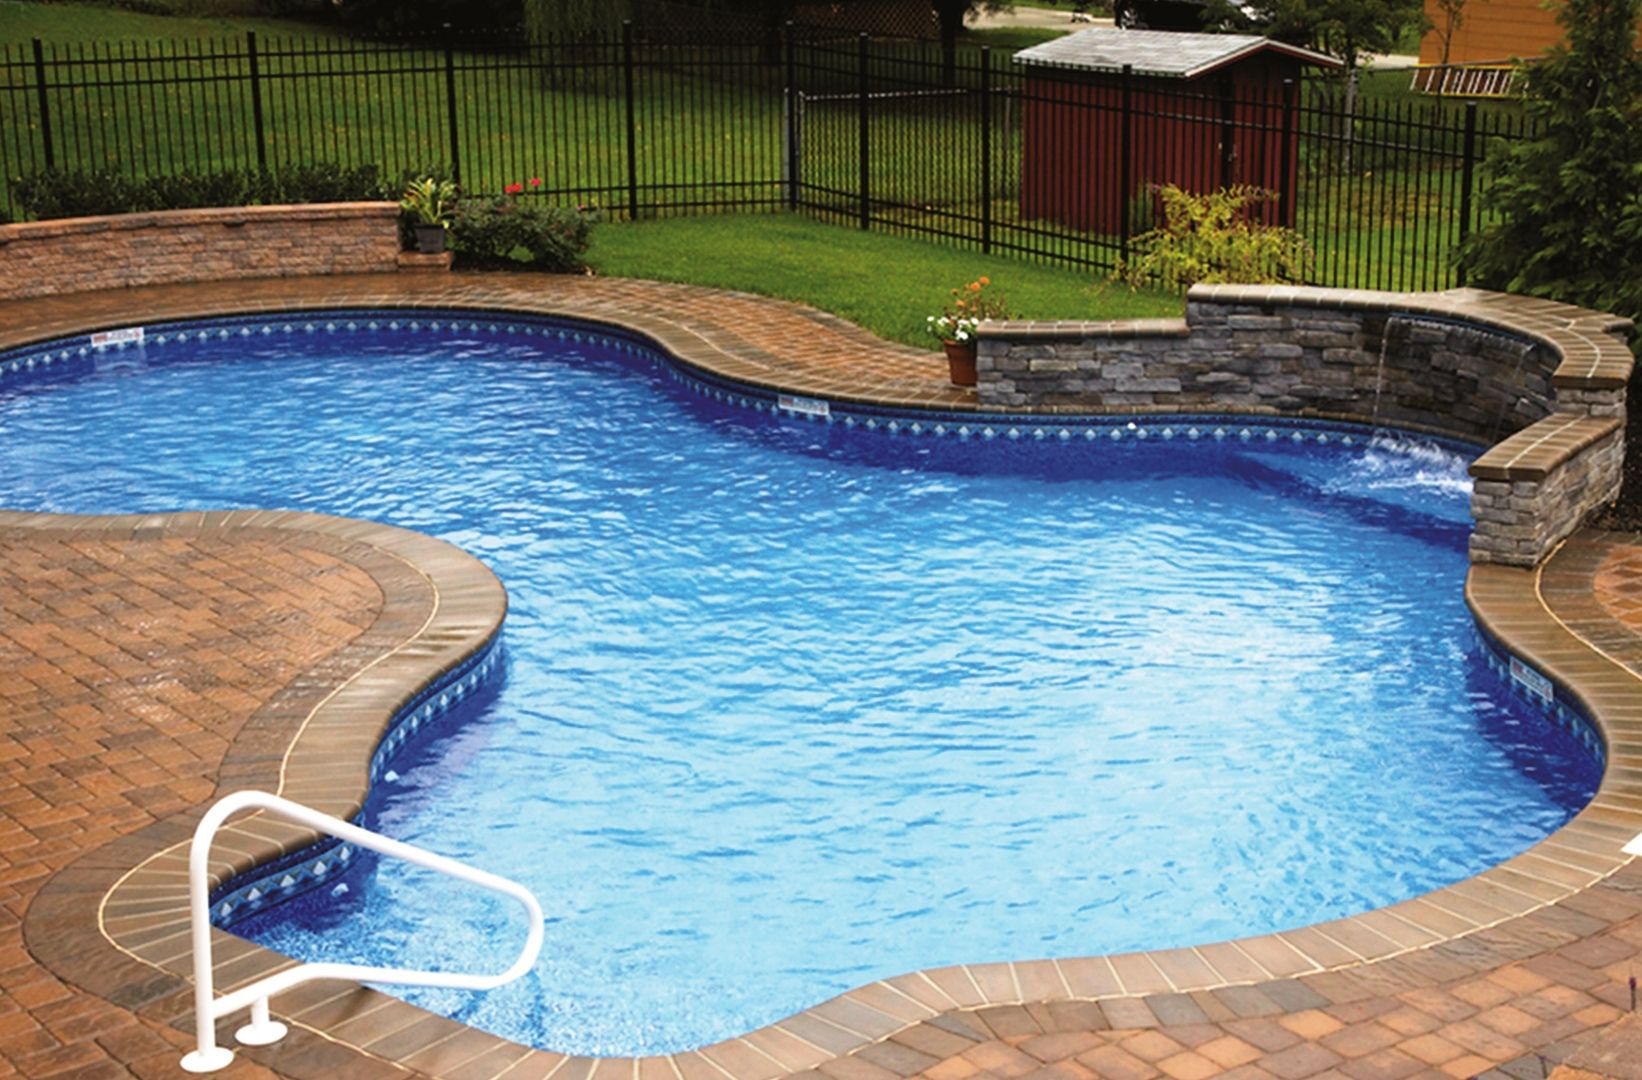 Back yard swimming pool ideas swimming pool design Pool design plans